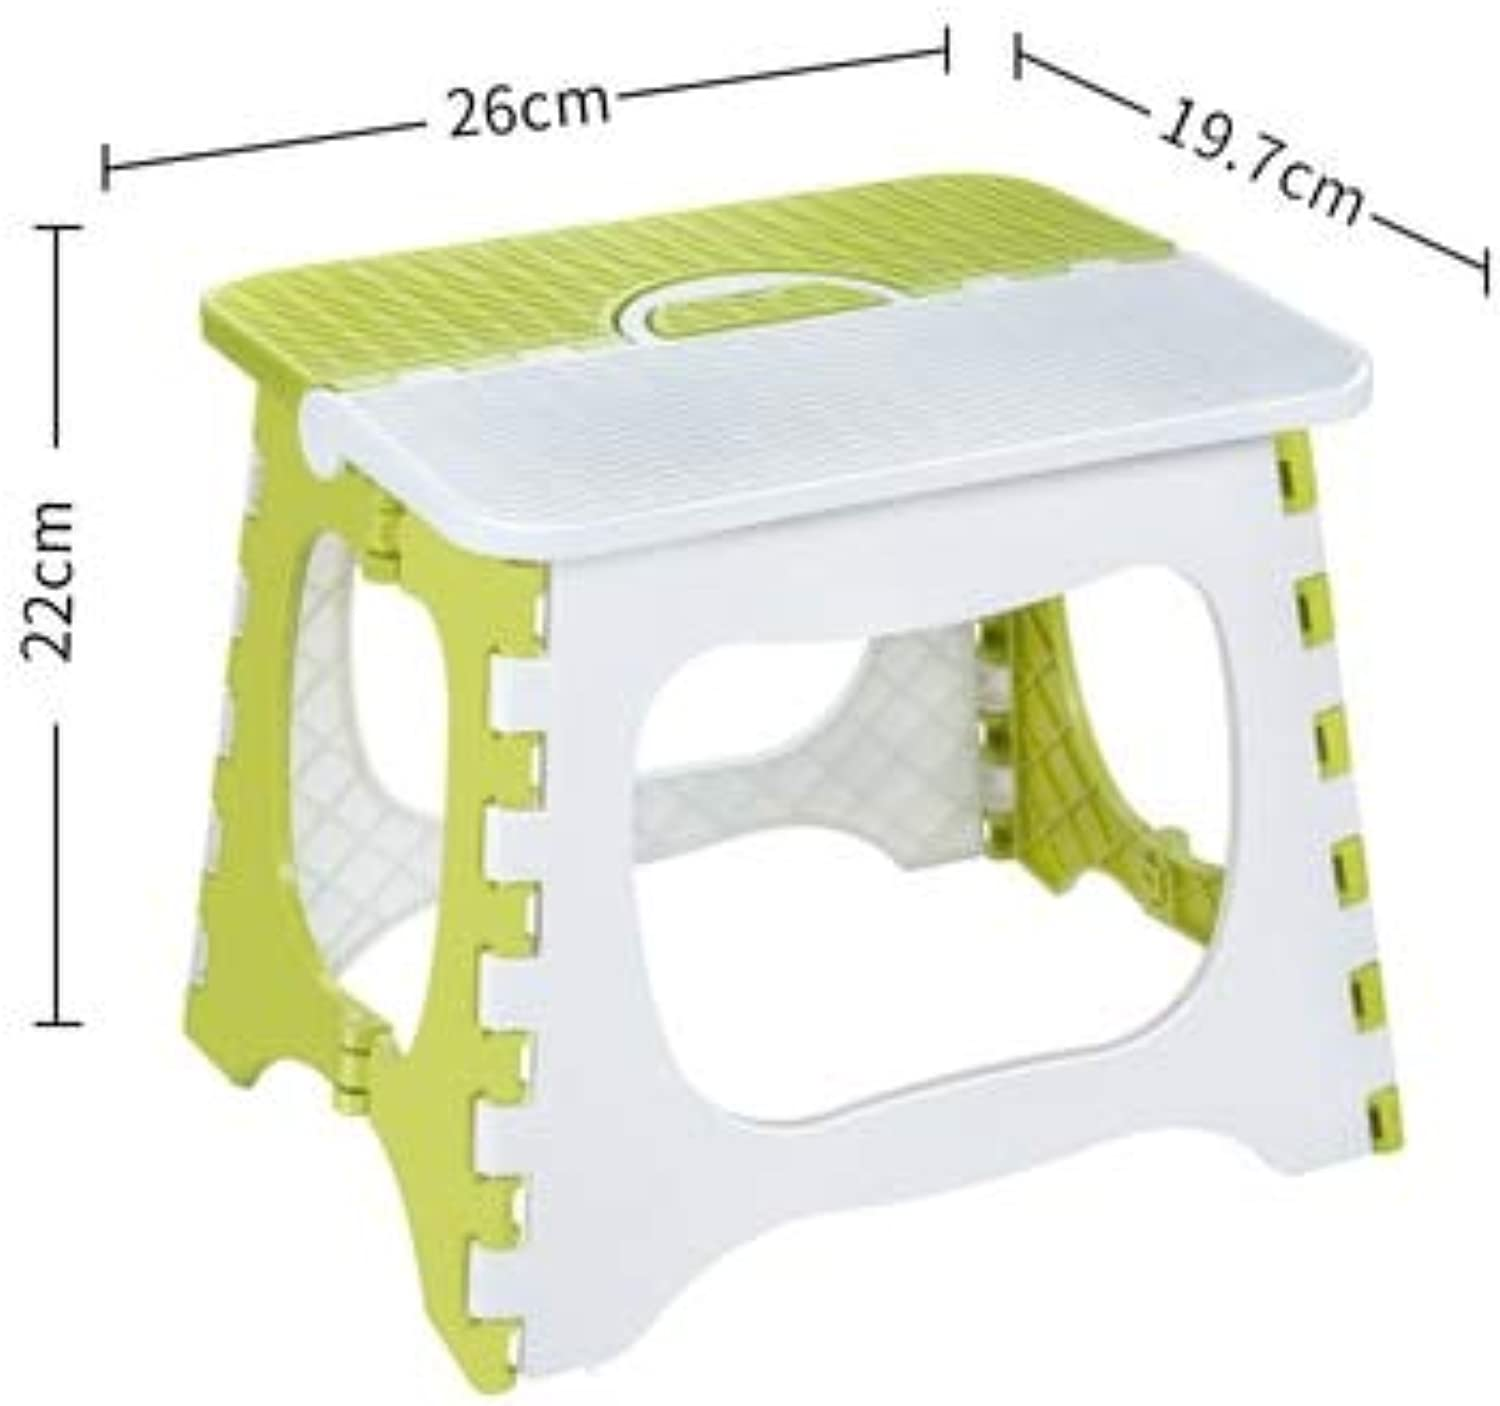 Folding Plastic Chairs Step Stool Modern Plastic Stool Folding Simple Chair Household Modern Simple Bench Living Room Home Indoor Portable Stool A Style Medium